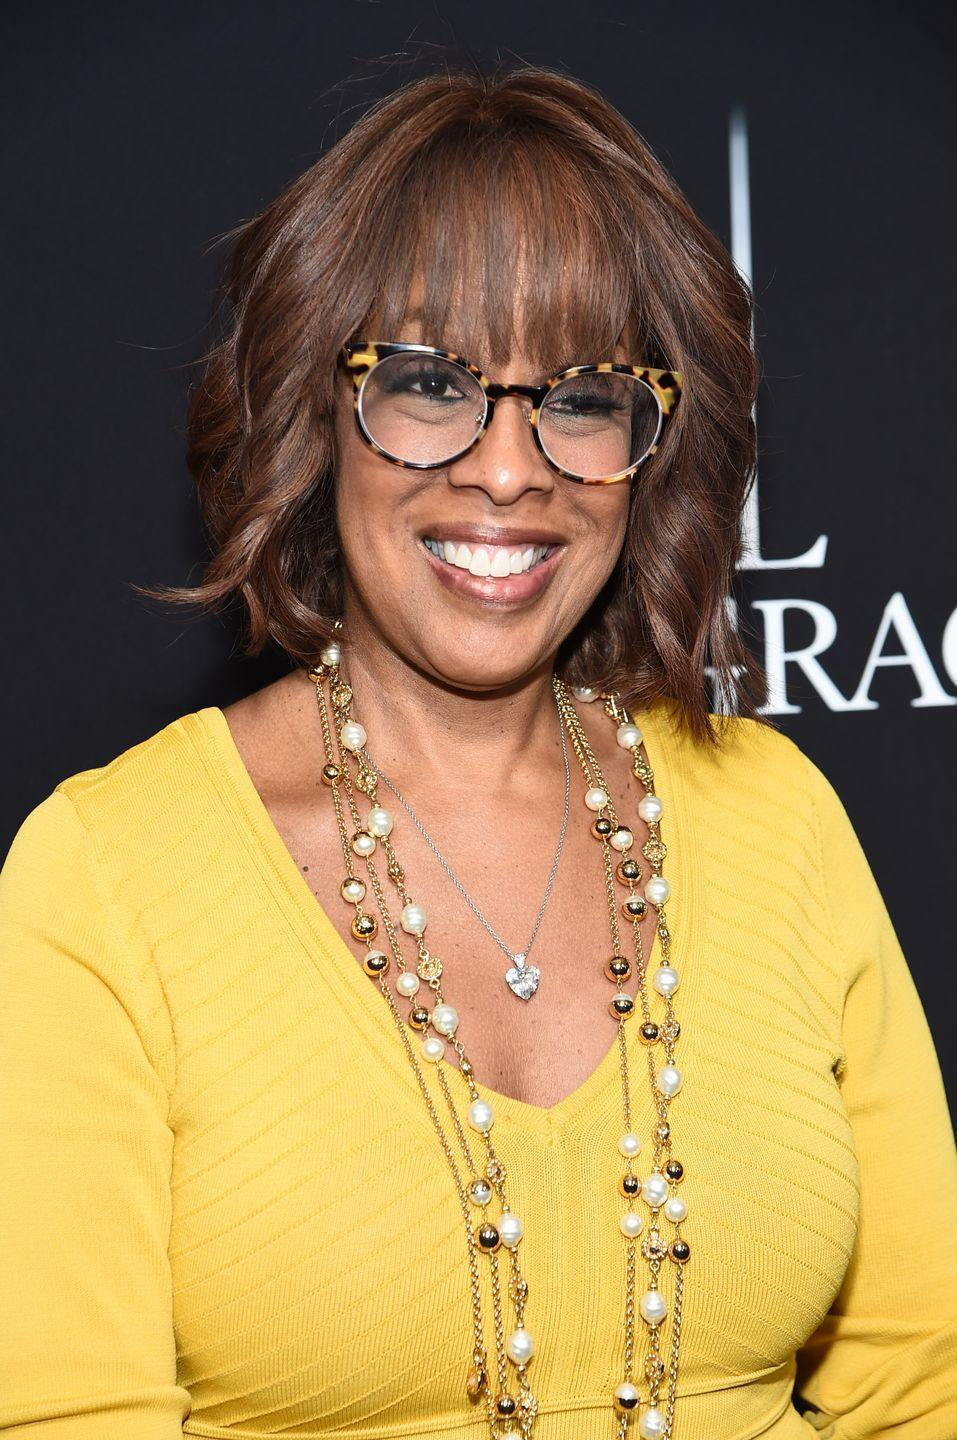 <p><strong>Gayle King's</strong> chocolatey brown hair has thin chestnut highlights that brighten it up. This color looks great with soft bangs like hers. </p>